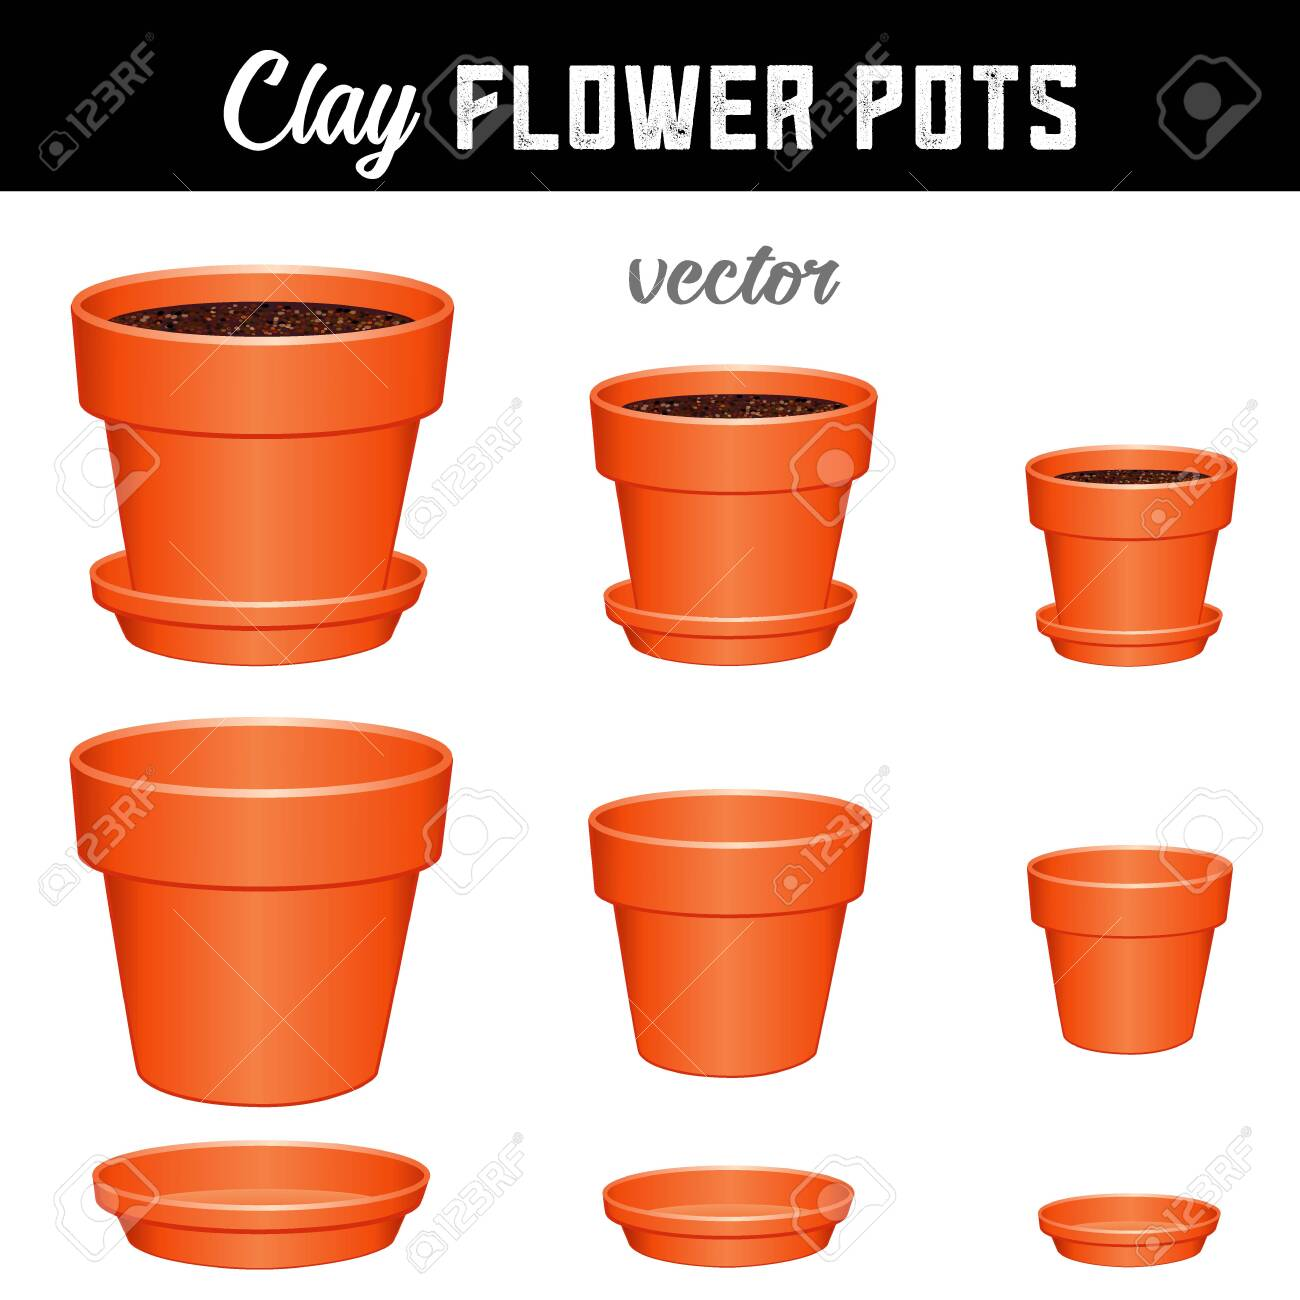 Flower pots, small, medium, large clay garden planters and saucers, separate and combined versions for Do It Yourself garden projects isolated on white background. - 153620715